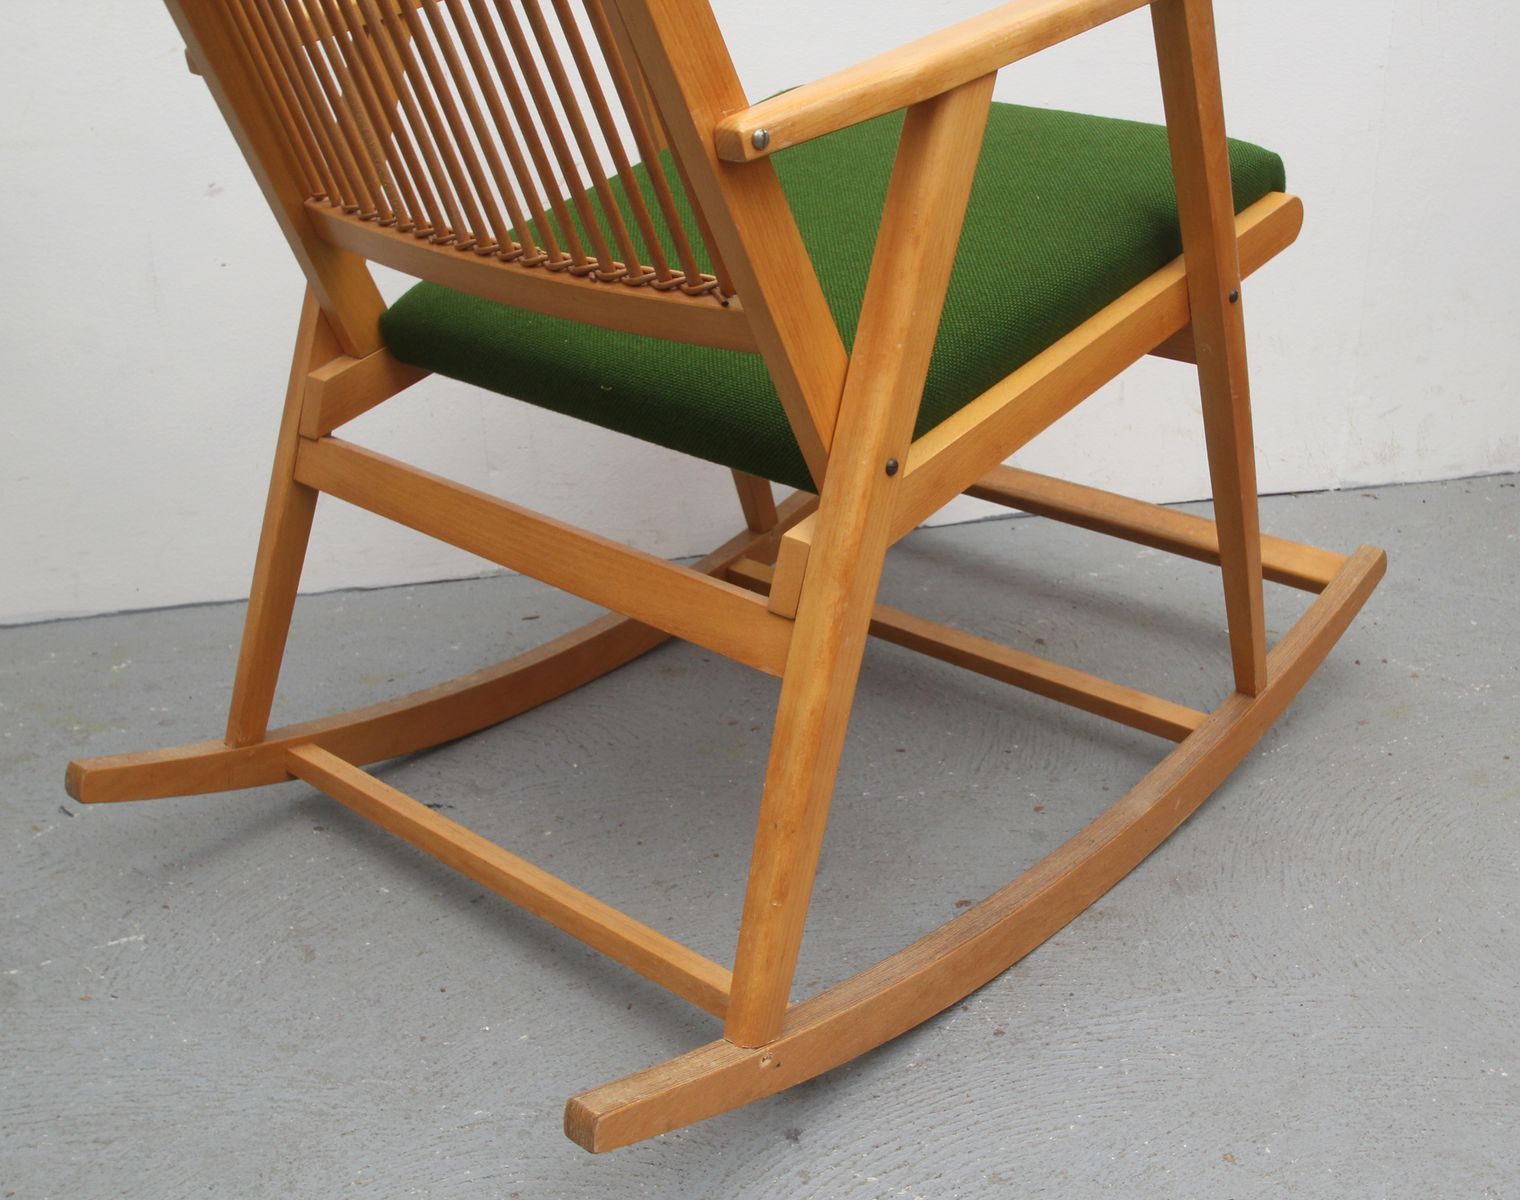 German Bamboo Rocking Chair, 1950s for sale at Pamono